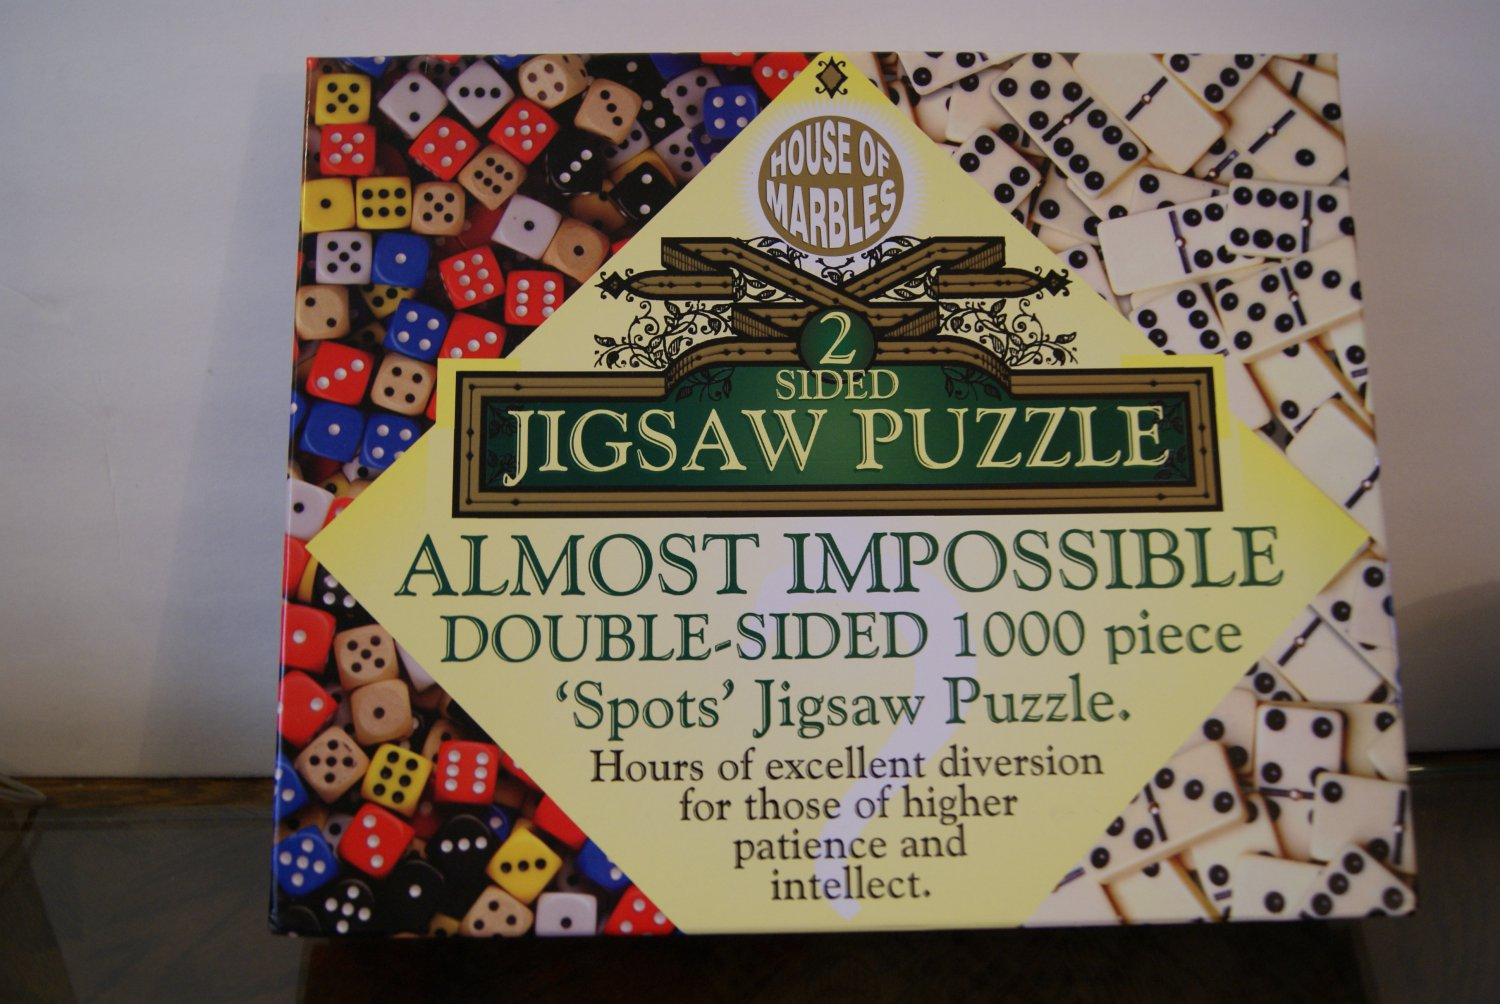 2 Sided Jigsaw Puzzle